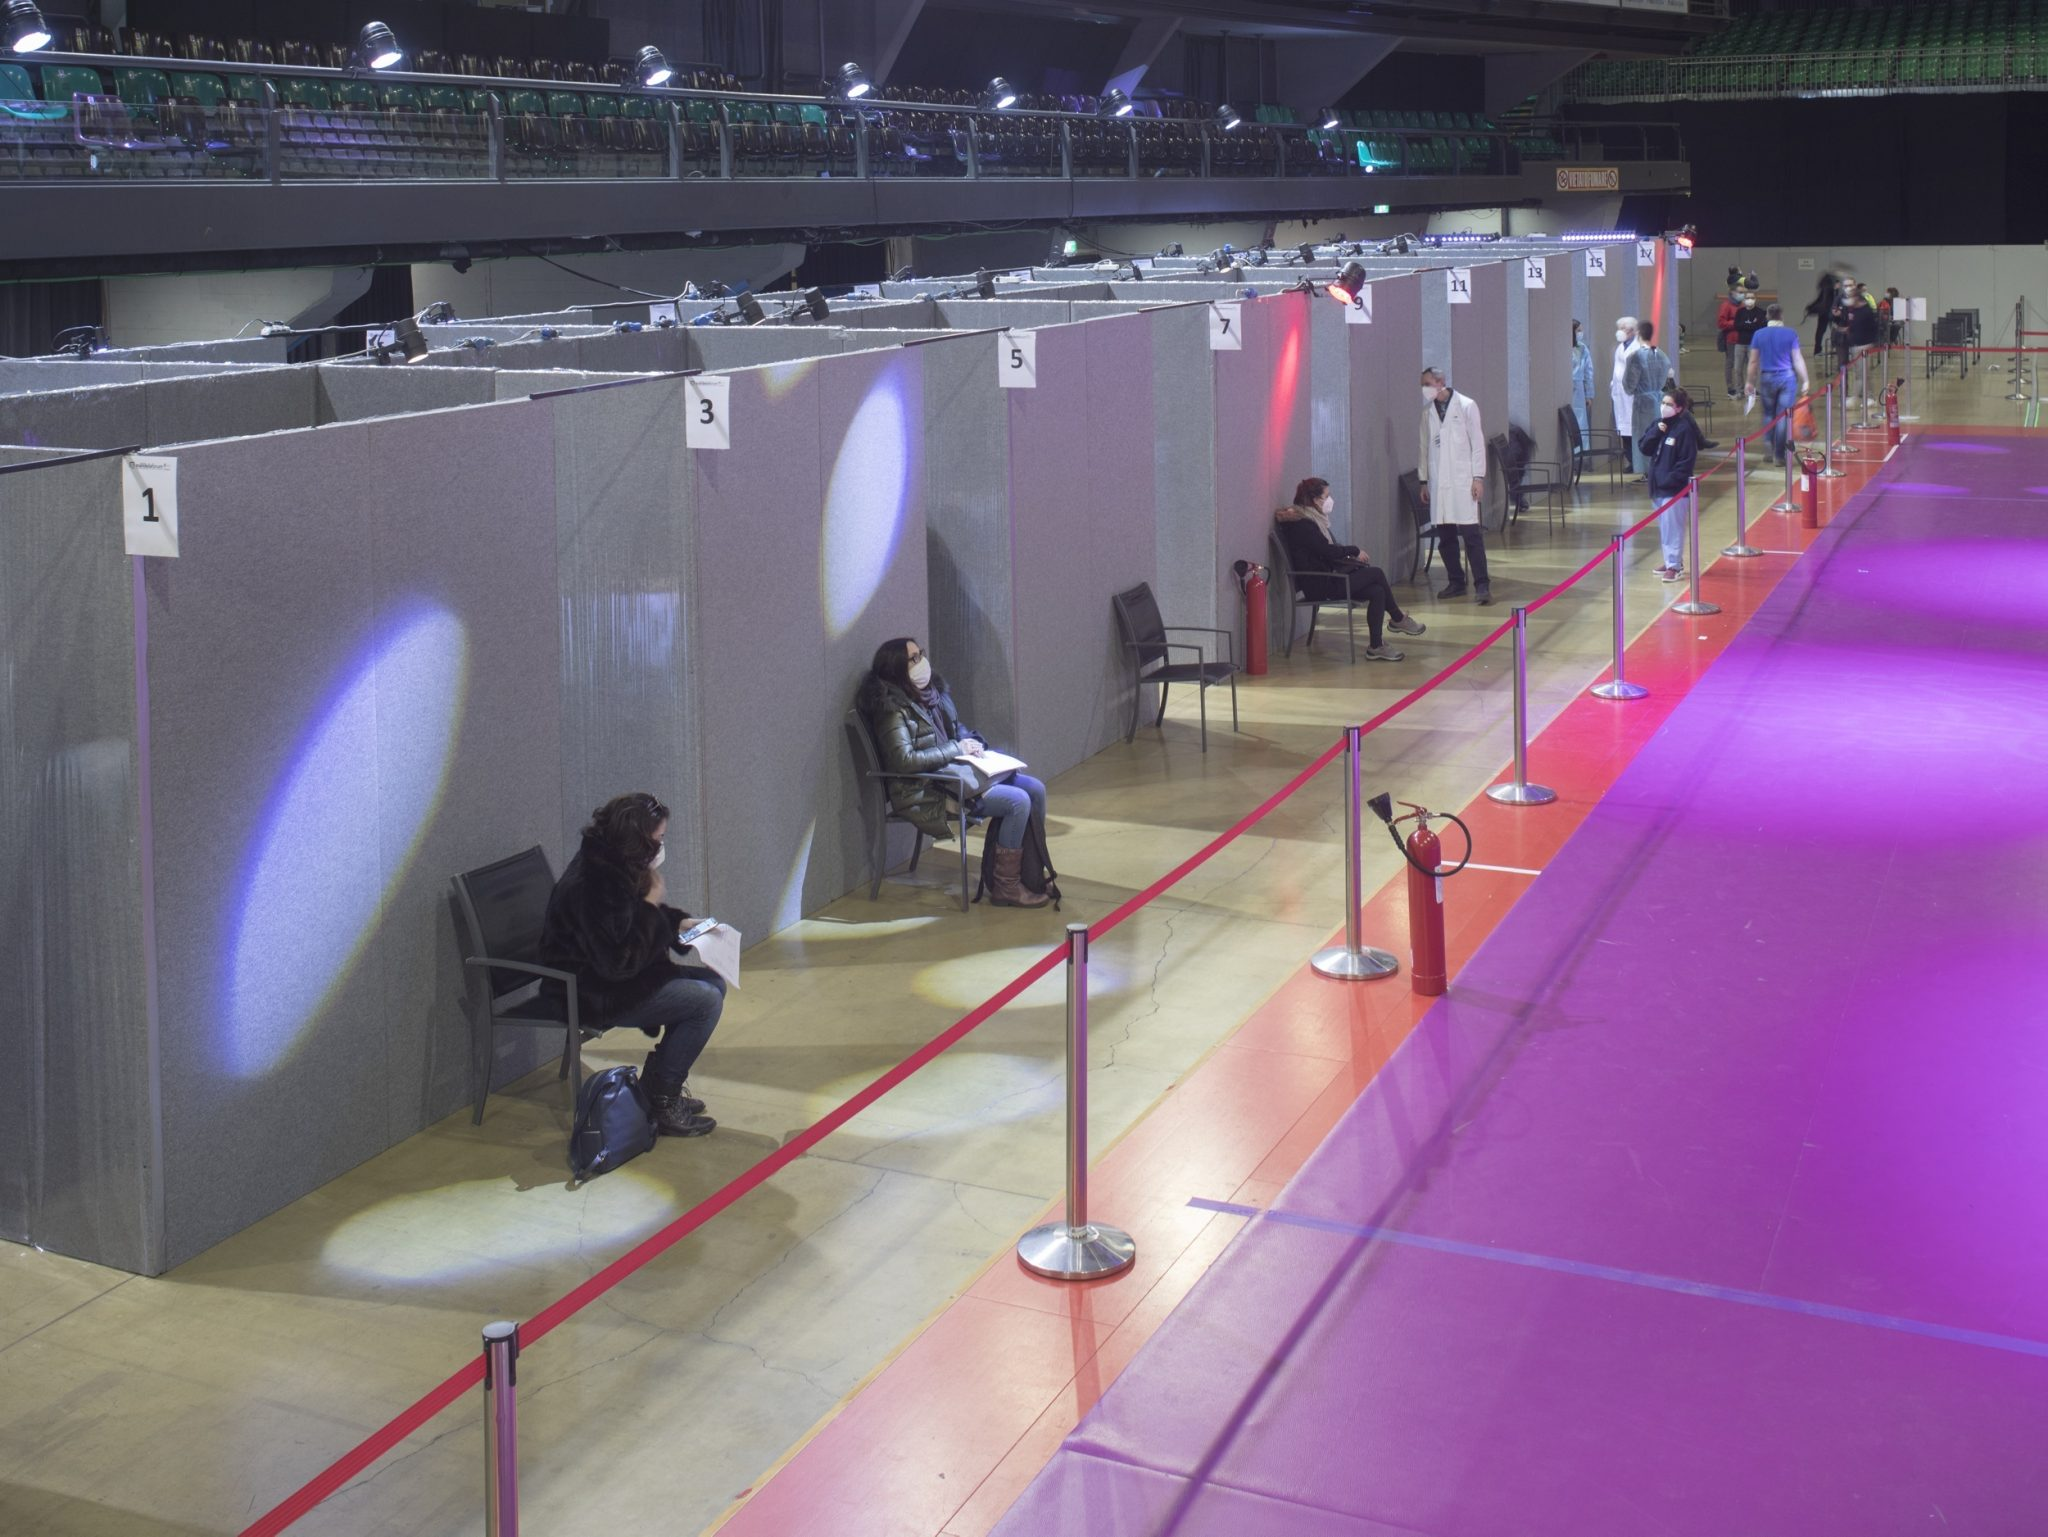 Covid-19 vaccination center inside the Mandela Forum sports hall, Florence, Italy, 2021